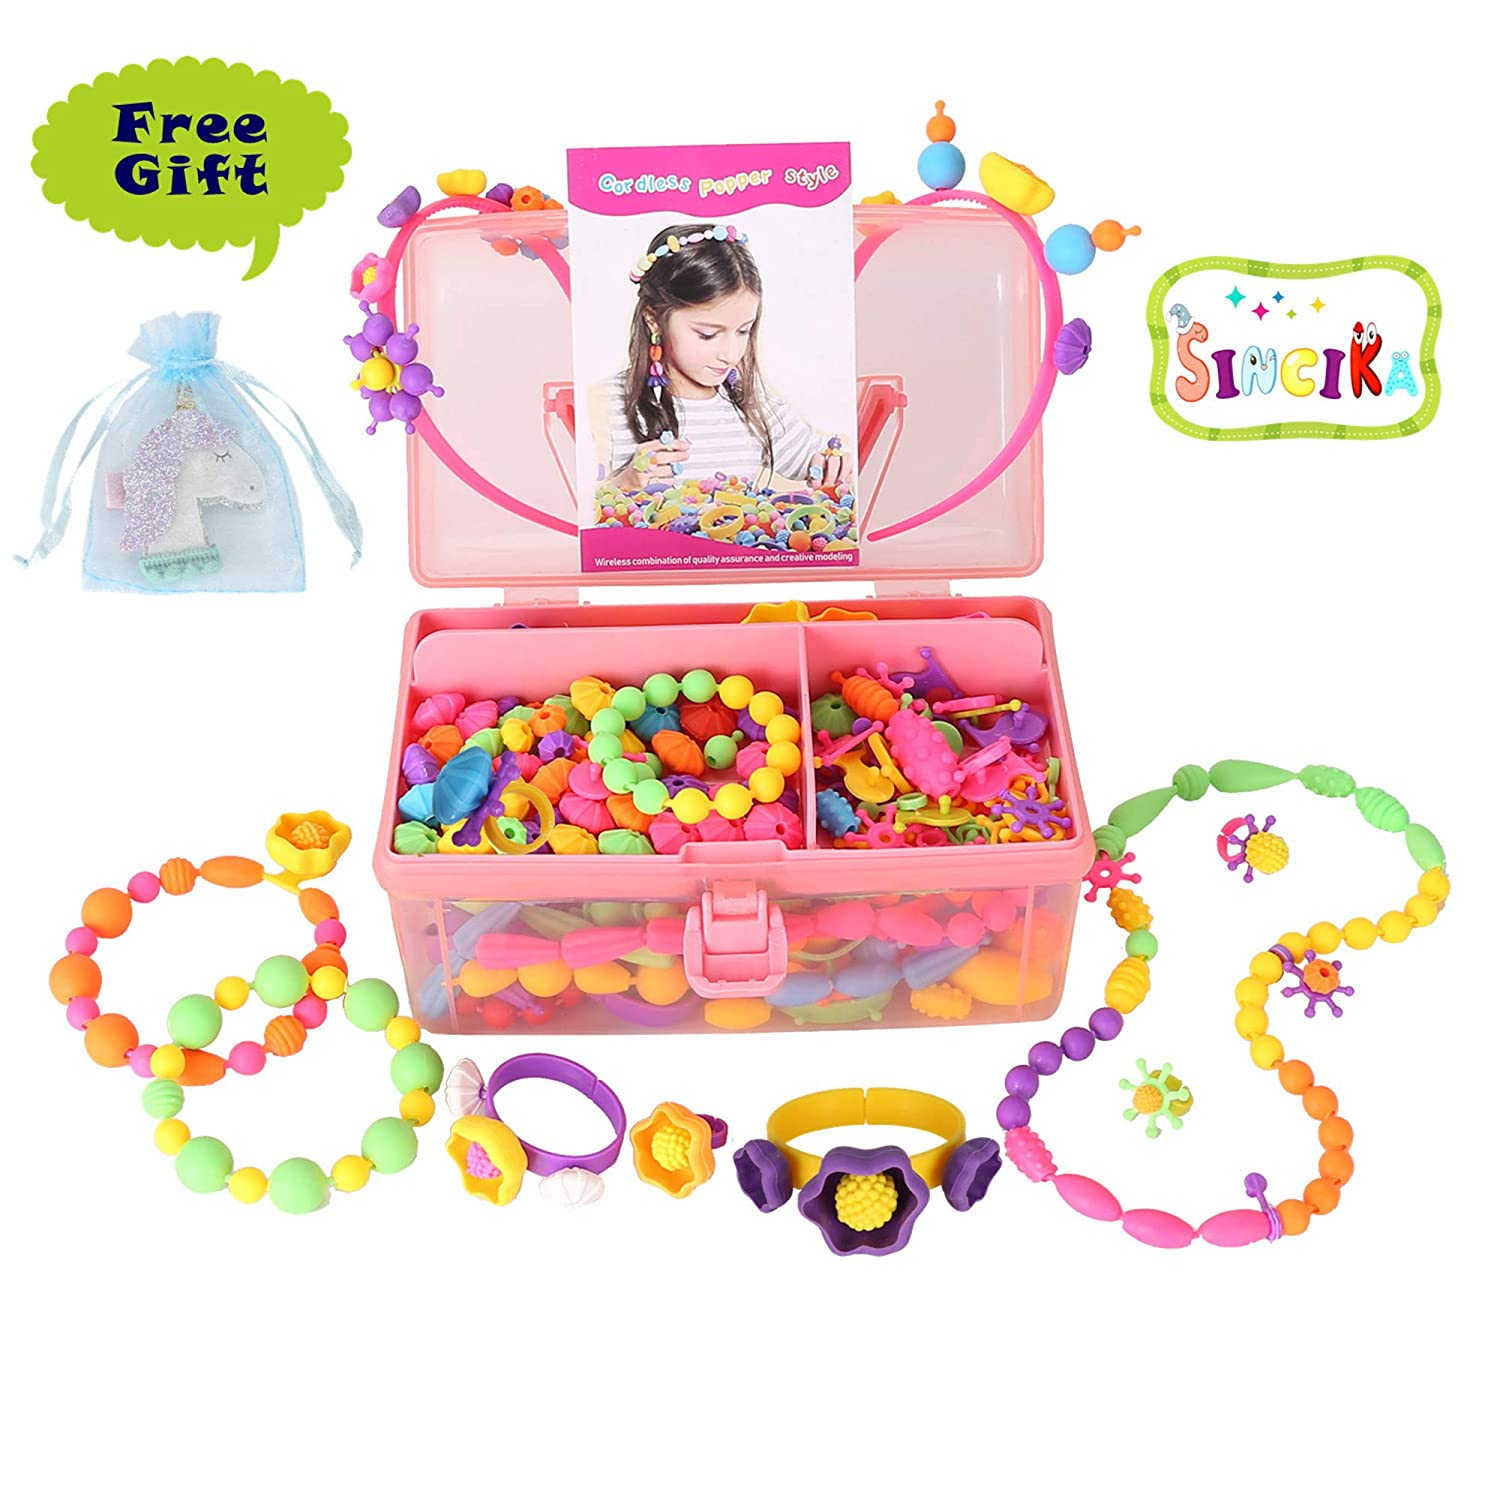 Pop Snap Beads Set for Kids with Storage Box ( 520 PCS) - Creative DIY Dress Up Jewelry Toys for Making Necklace, Bracelet and Ring - Ideal Christmas Birthday Gifts for 4, 5, 6, 7, 8 Years Old Girls (B) Sincika